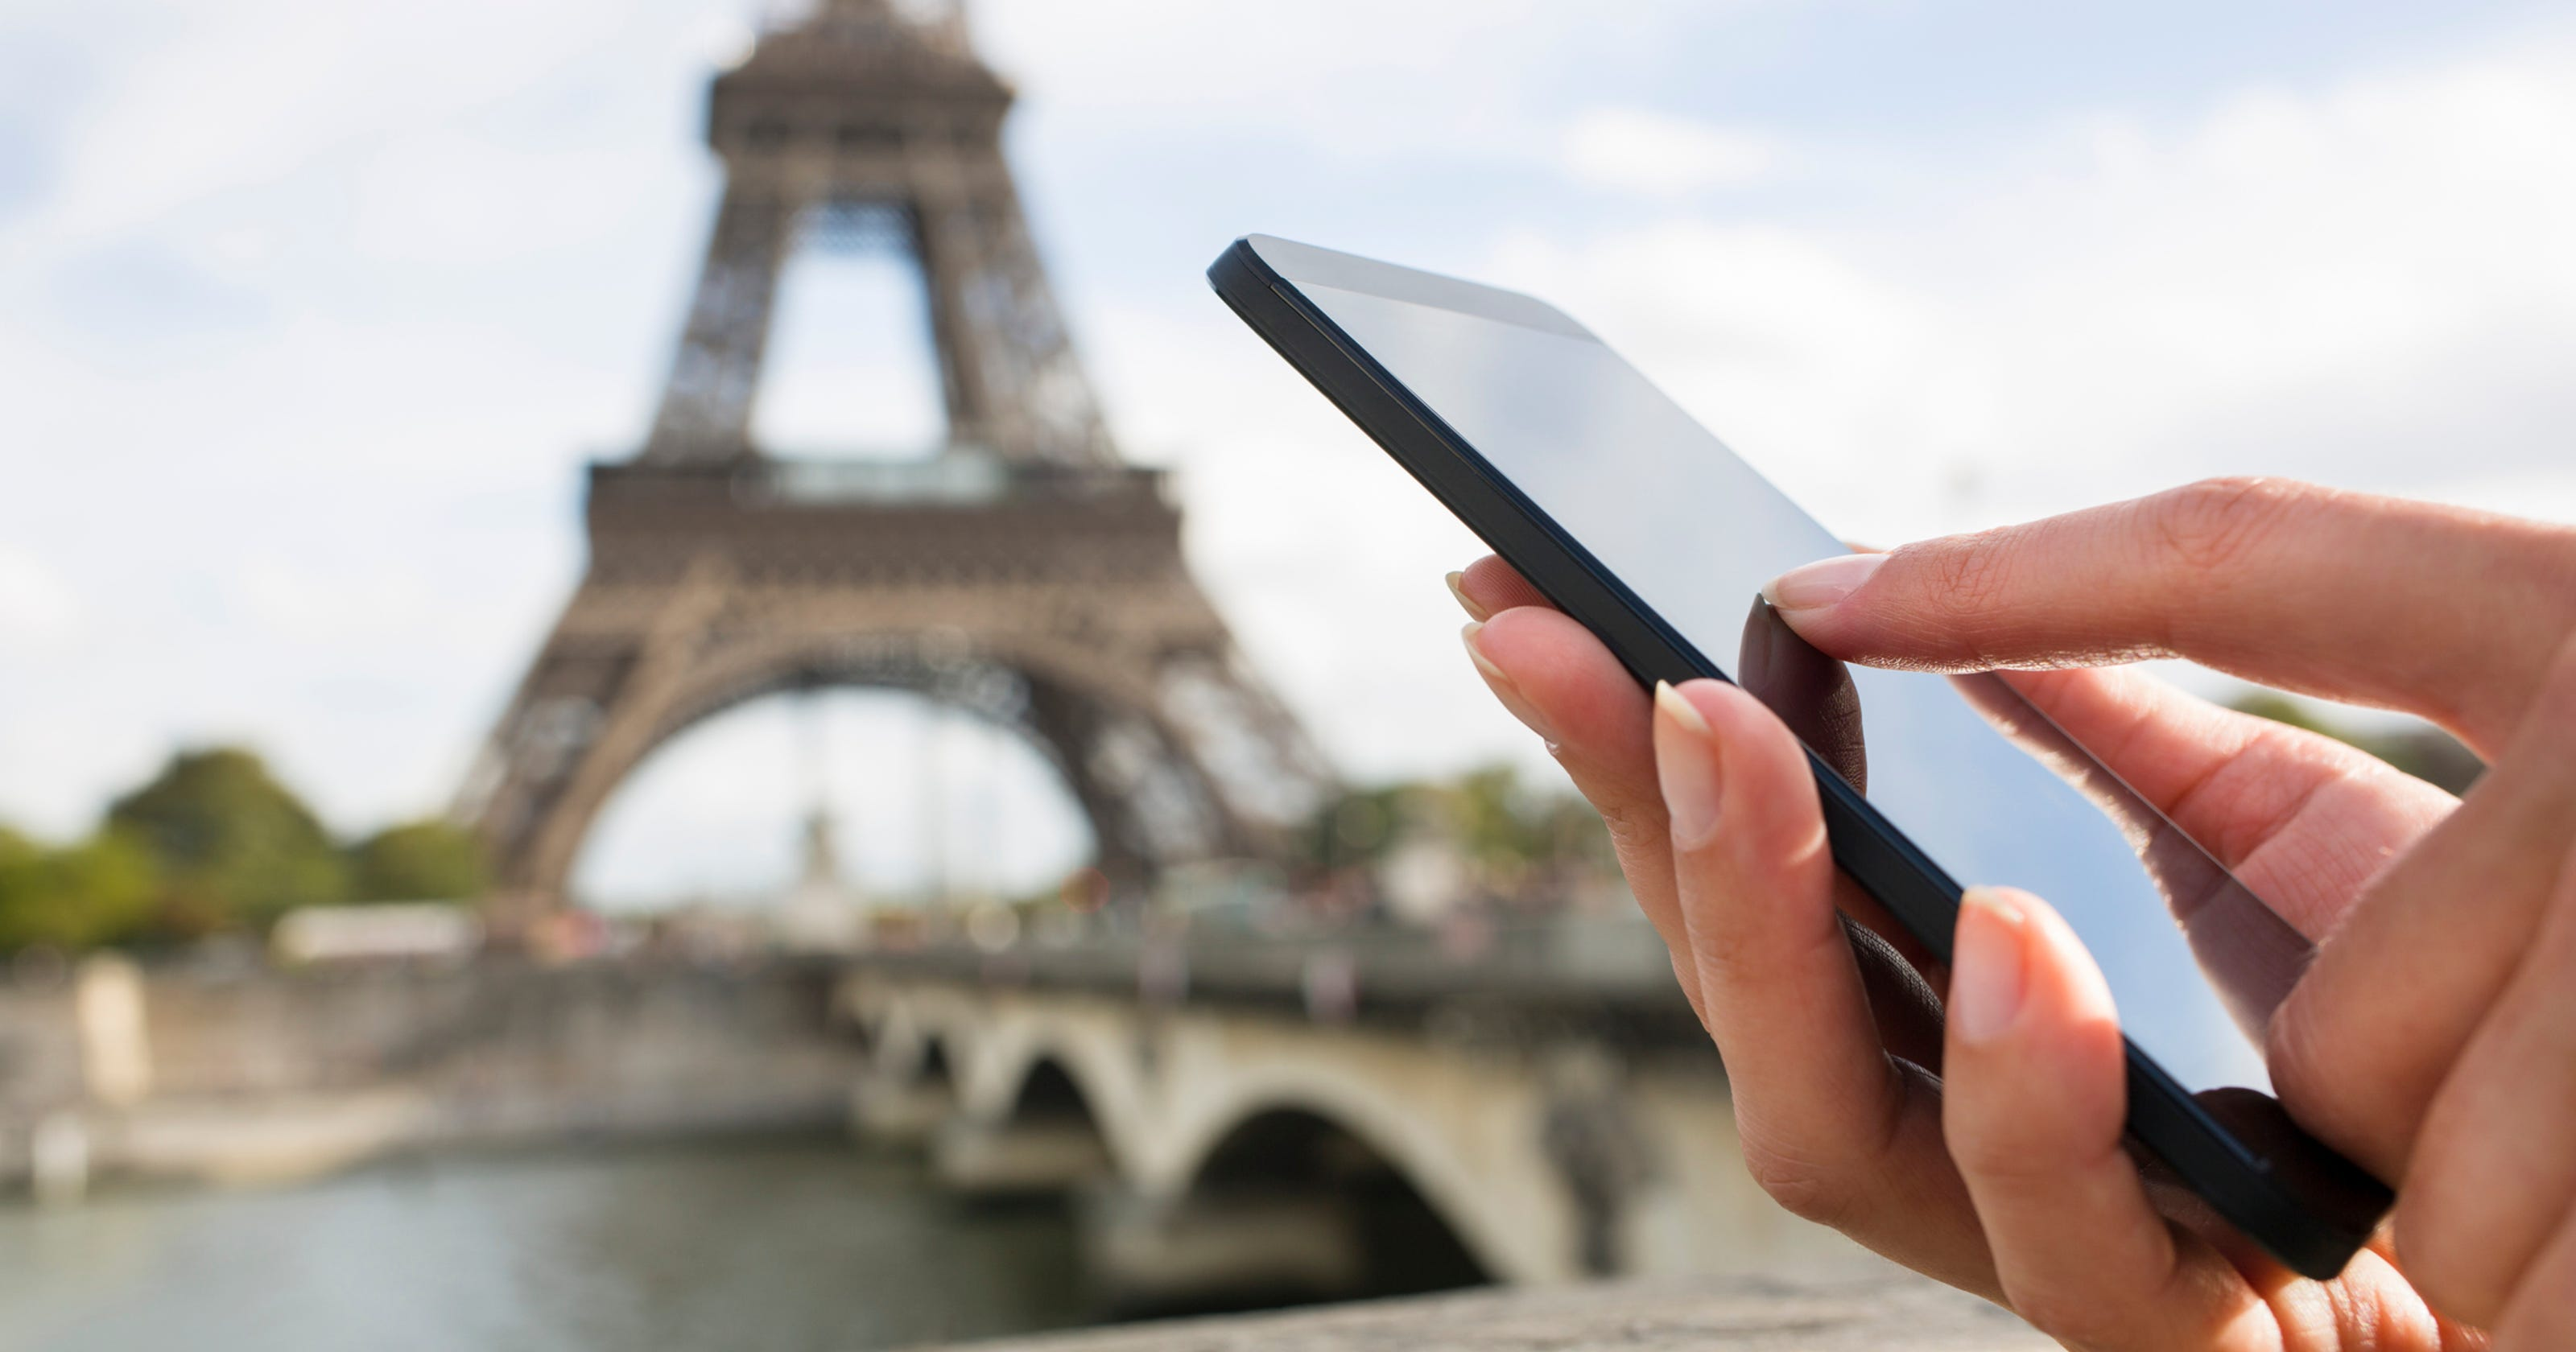 Best Wi-Fi options for travelers